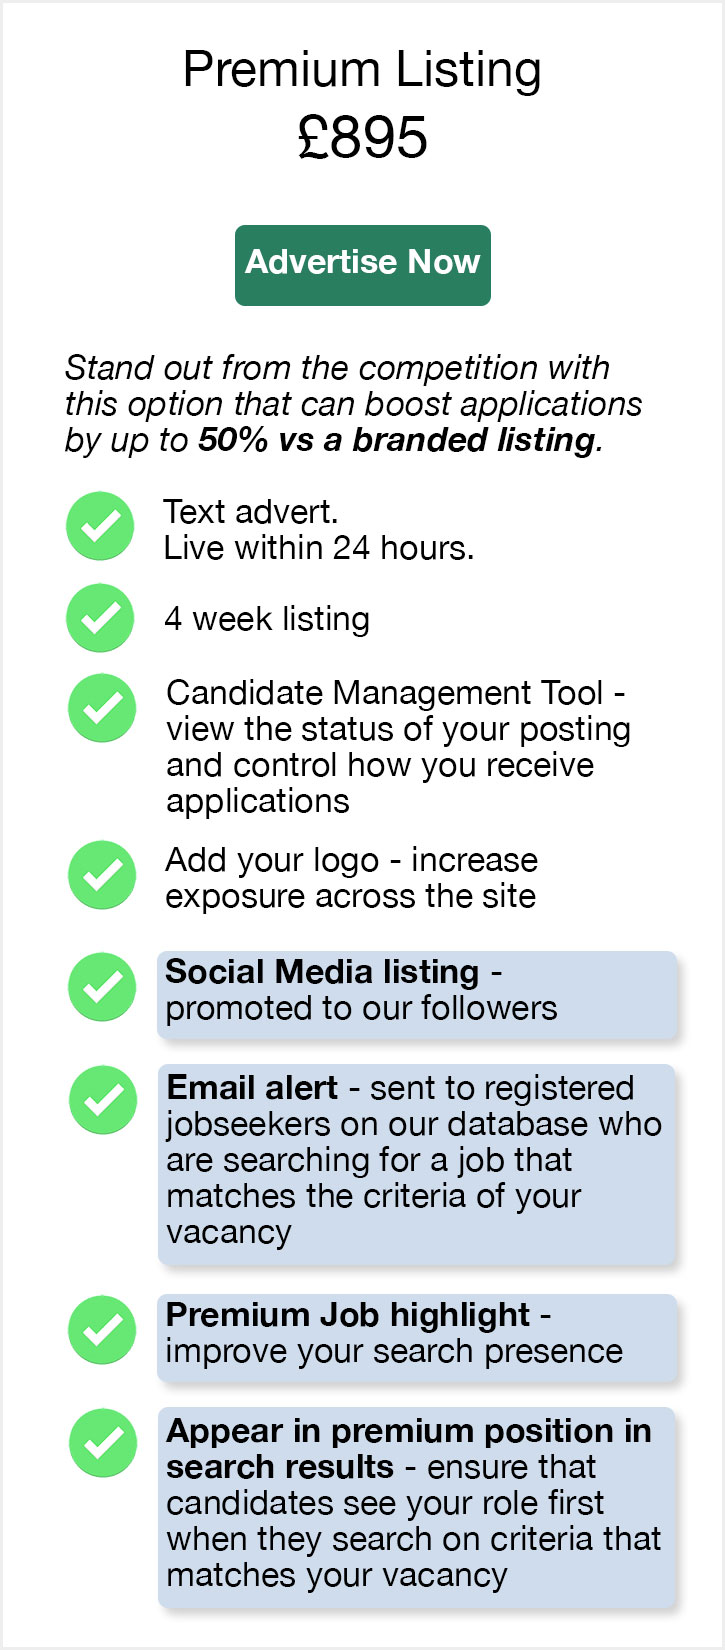 Premium Listing. £895. Advertise Now. Stand out from the competition with this solution that can boost your applications by up to 50% versus a branded listing. Text advert. Live within 24 hours. 4 week listing. Candidate Management Tool - view the status of your posting and control how you receive applications. Add your logo - increase exposure across the site. Social Media listing - promoted to our followers. Email alert - sent to registered jobseekers on our database who are searching for a job that matches the criteria of your vacancy. Premium Job highlight - improve your search presence. Appear in premium position in search results - ensure that candidates see your role first when they search on criteria that matches your vacancy.